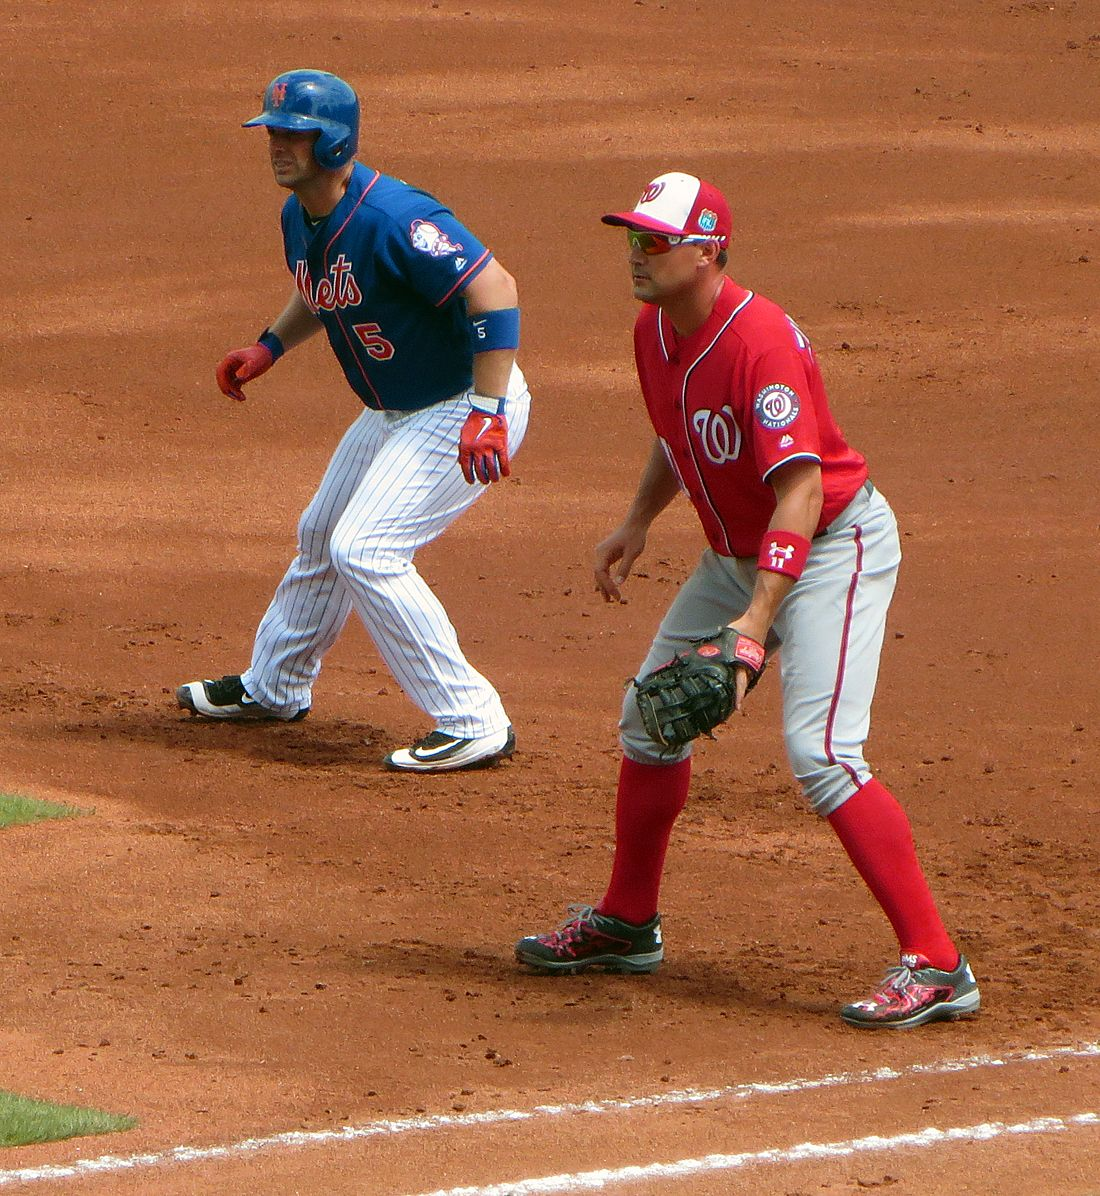 Mets David Wright and Nationals Ryan Zimmerman- March 30th, 2016